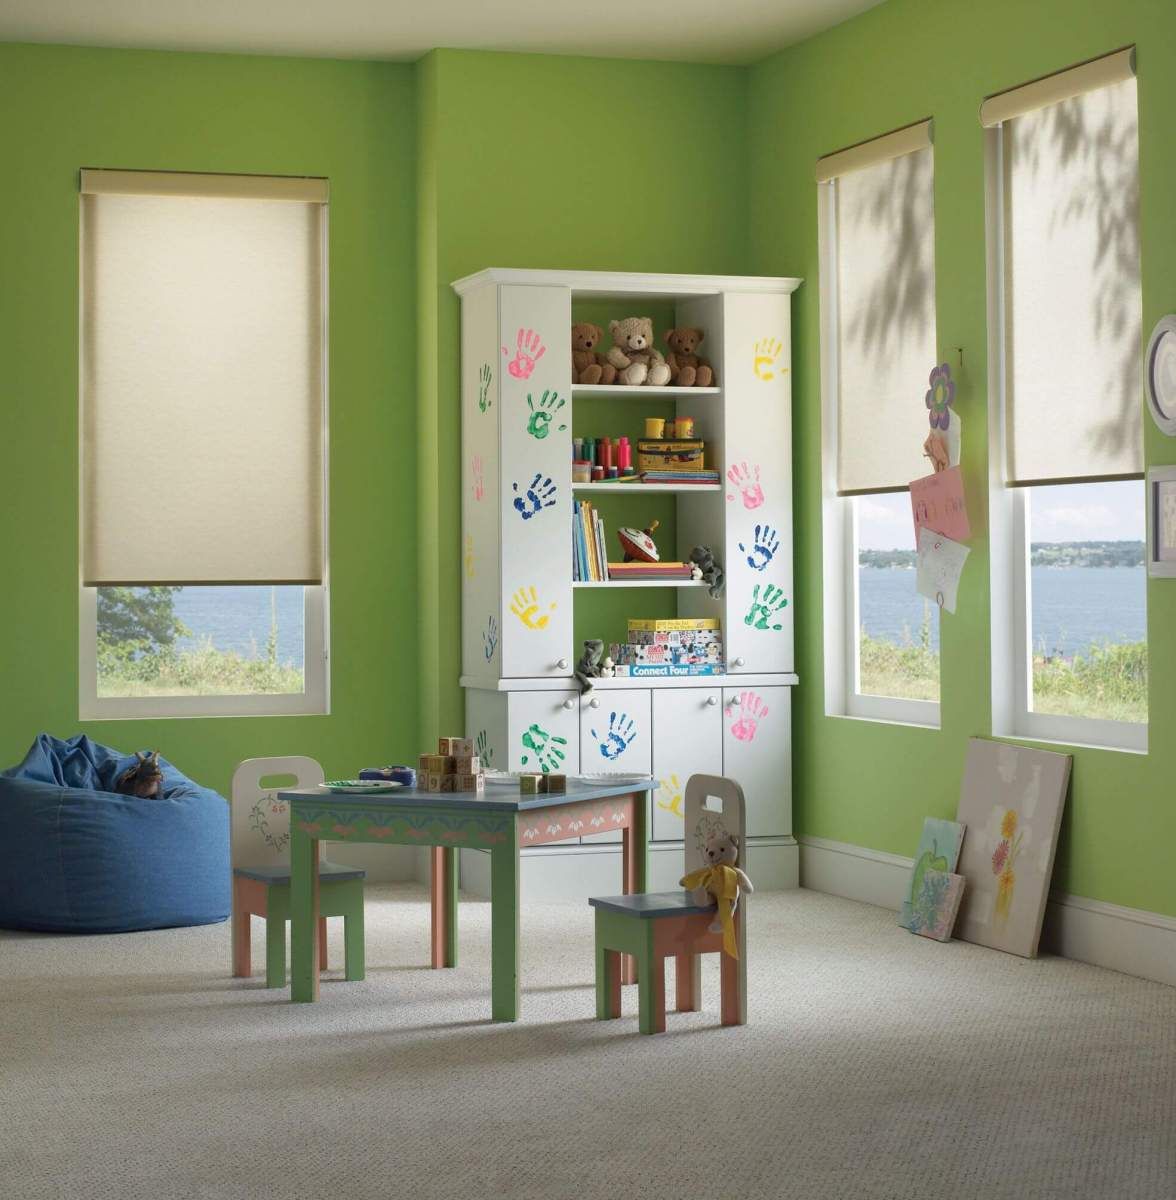 Timberblind Hillsborough NC Blinds And Shutters